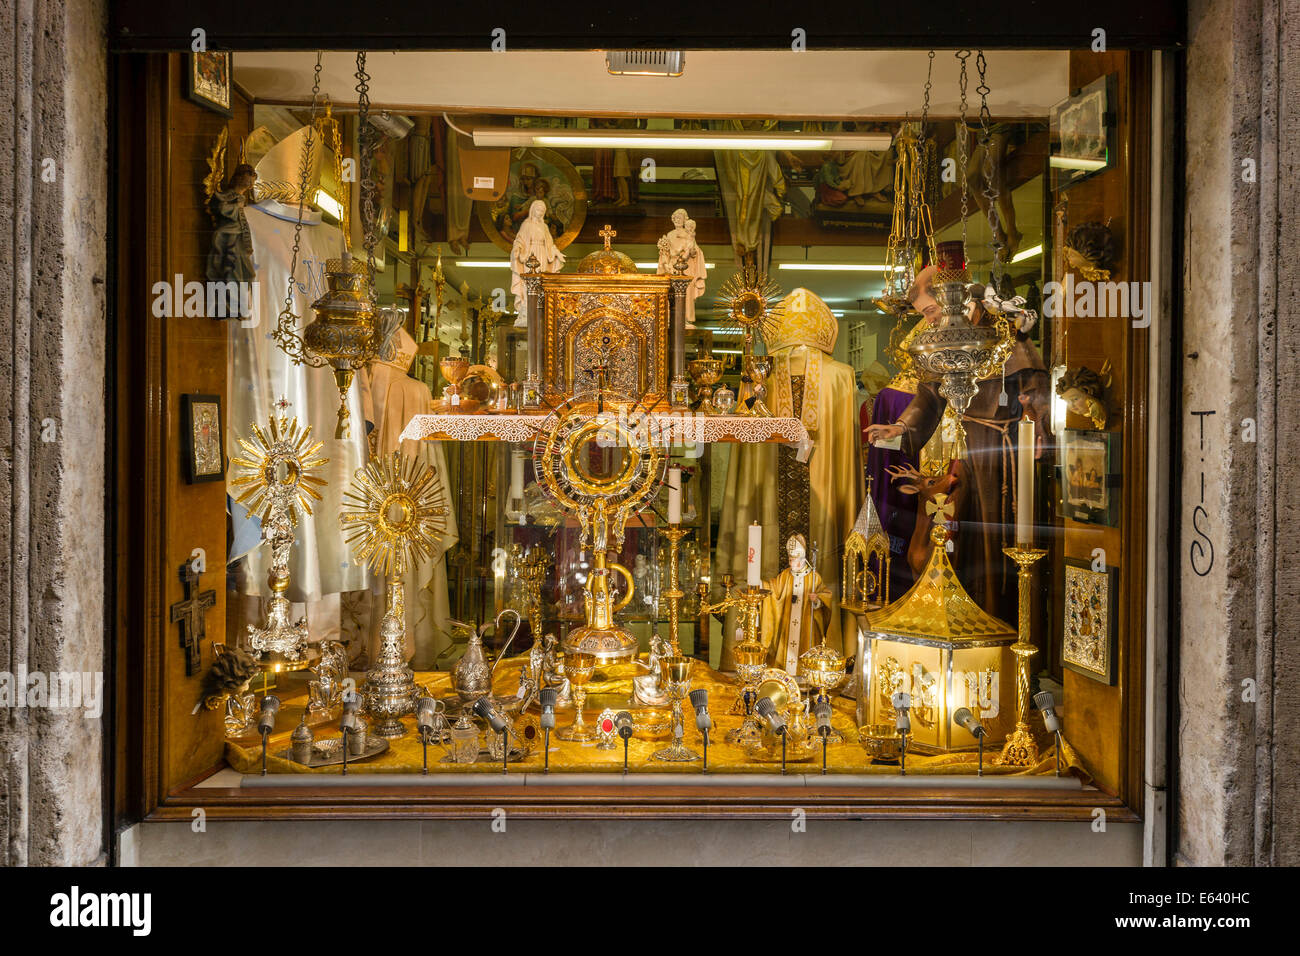 Shop window with devotional objects and goods for priests, Rome, Lazio, Italy - Stock Image